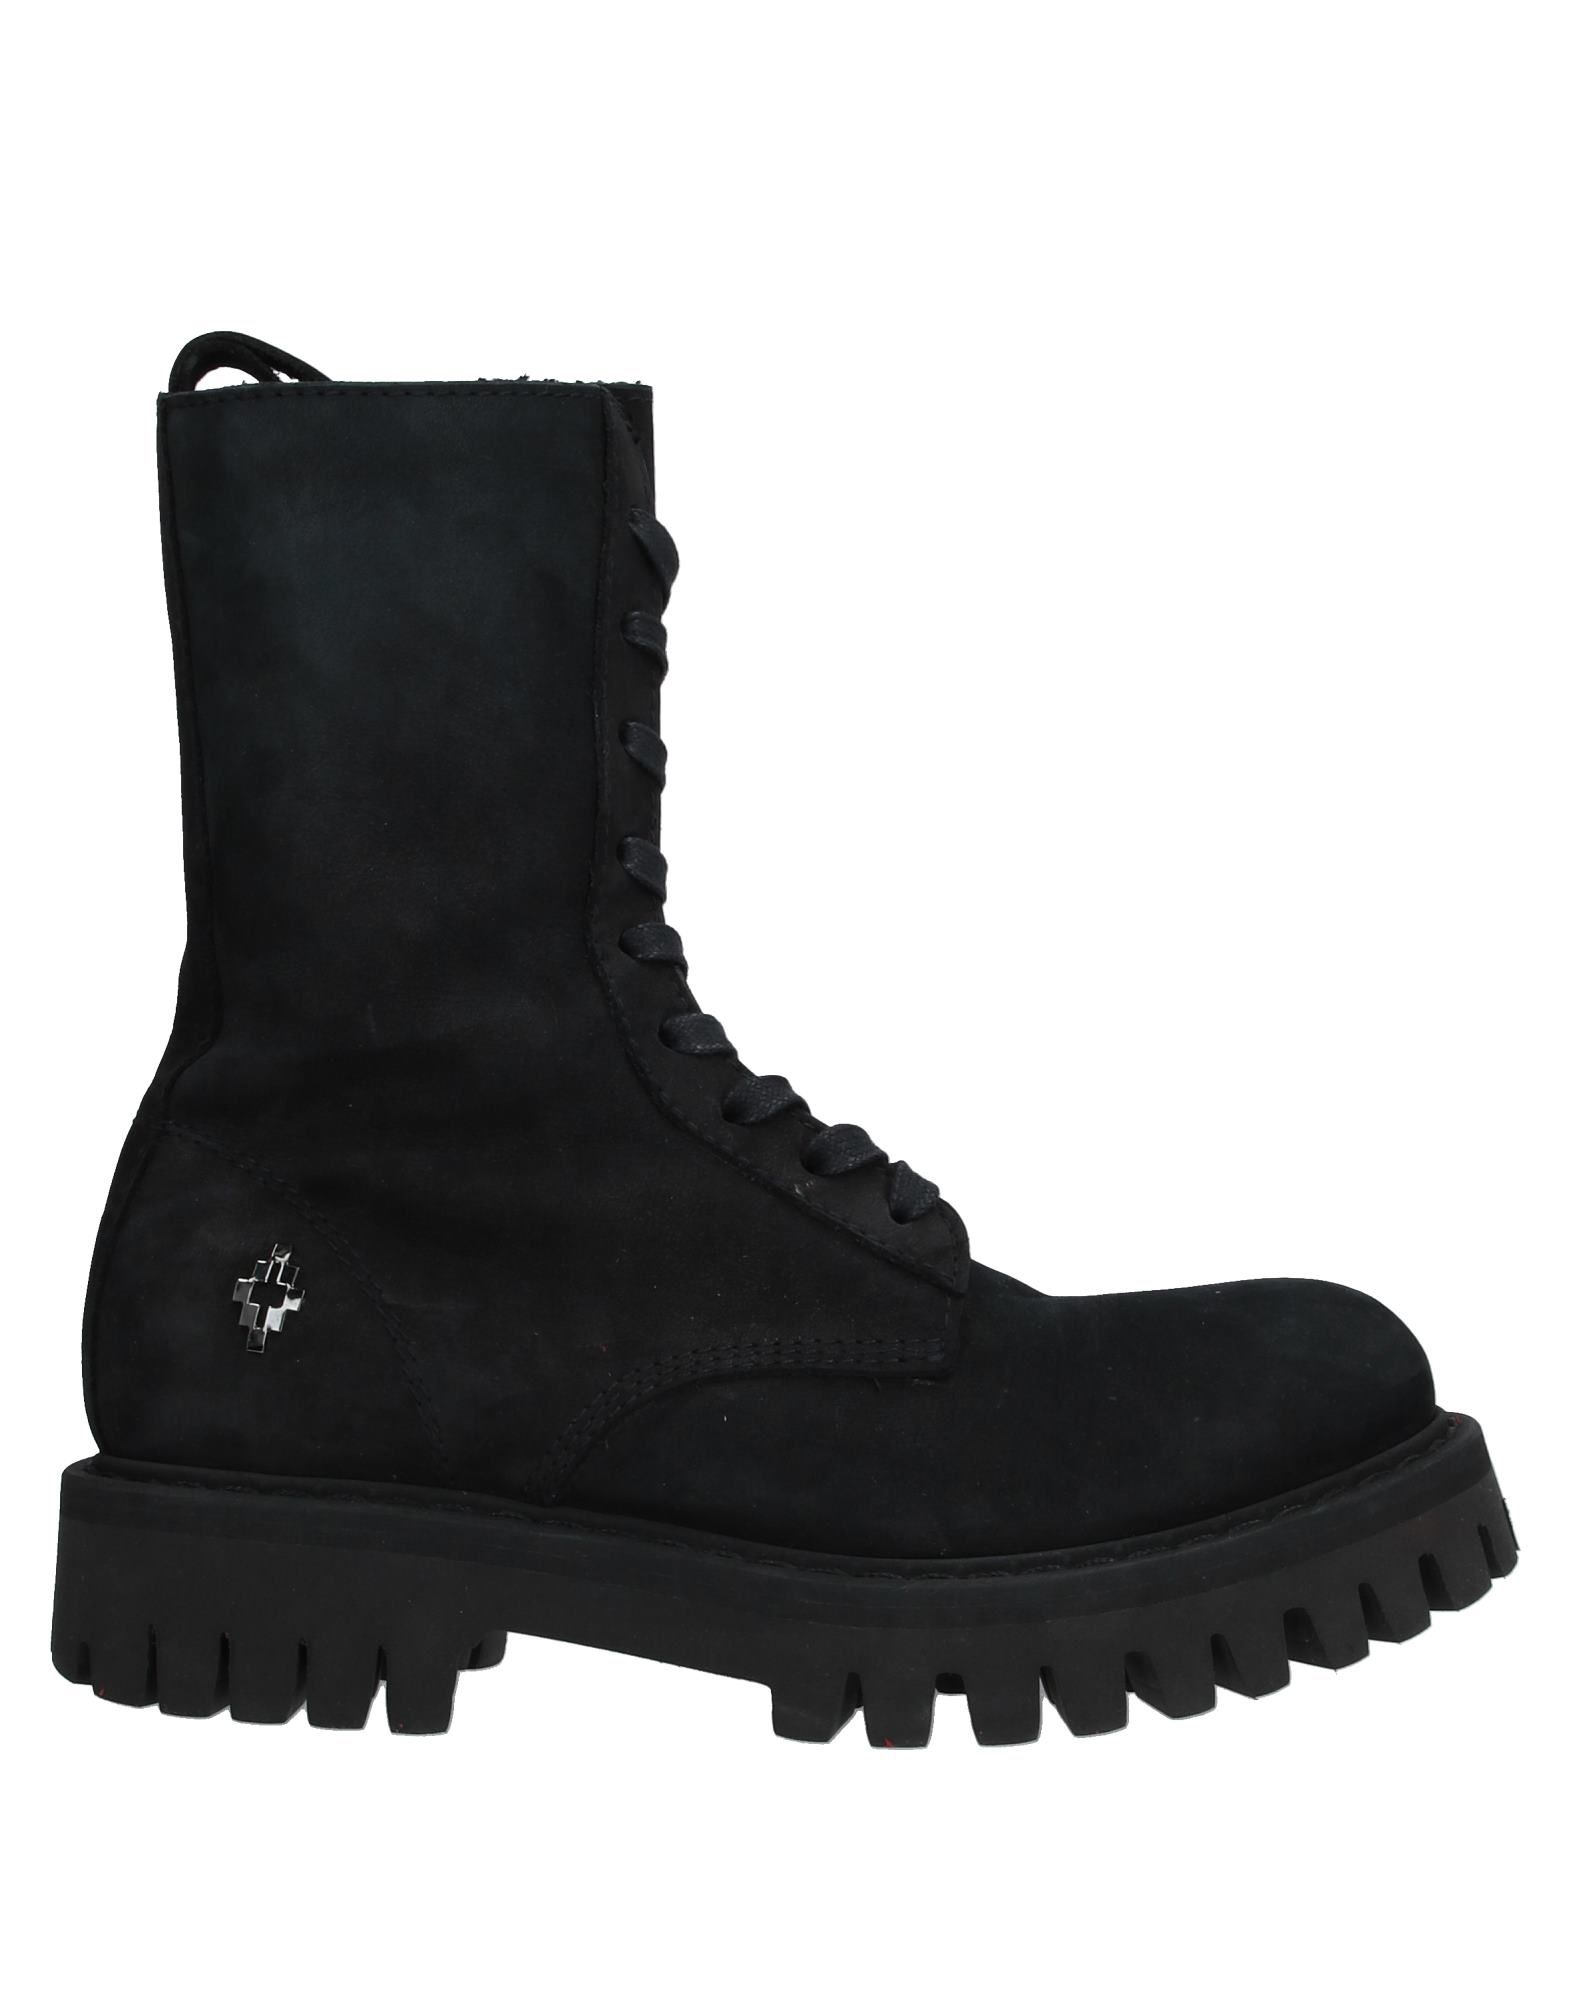 MARCELO BURLON Ankle boots. leather, nubuck, logo, solid color, laces, round toeline, square heel, rubber heel, leather lining, lug sole, contains non-textile parts of animal origin. Soft Leather